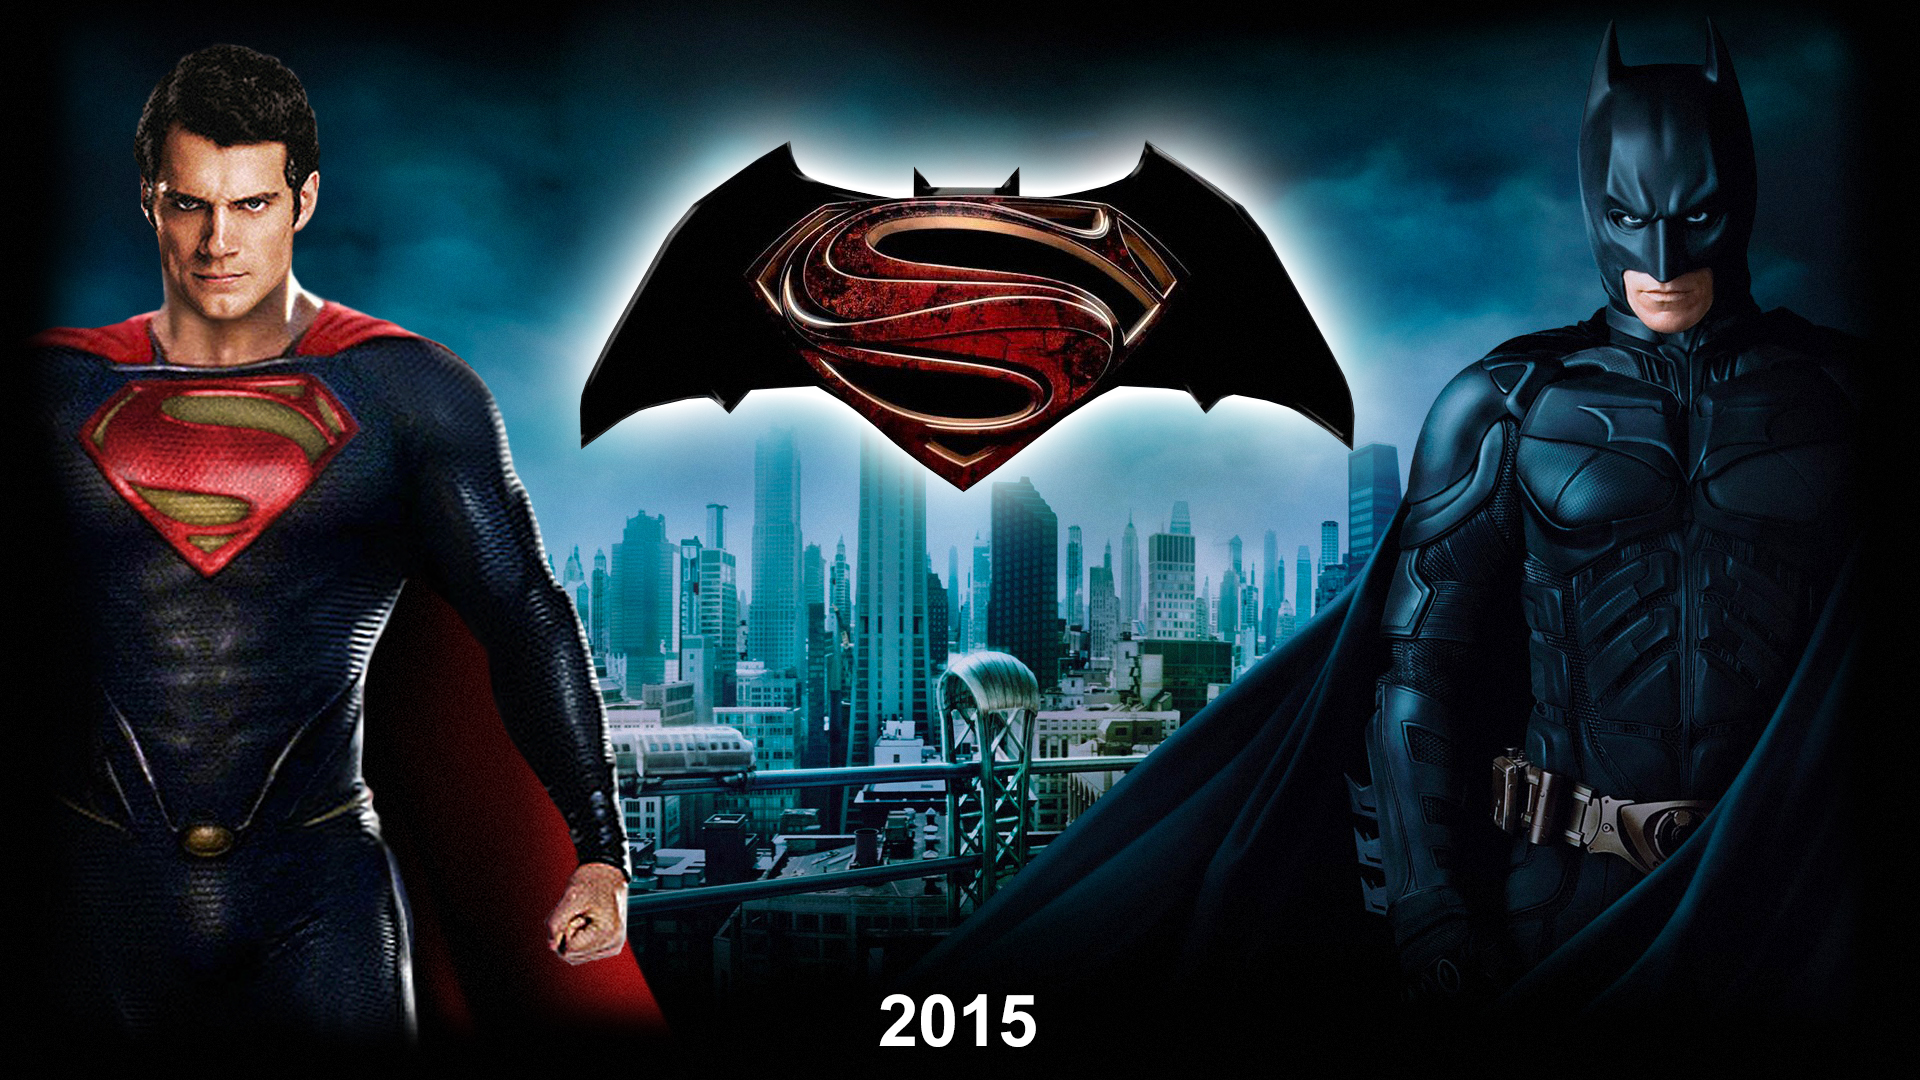 Batman VS Superman 2015 HD Wallpaper Batman VS Superman 2015 HD 1920x1080